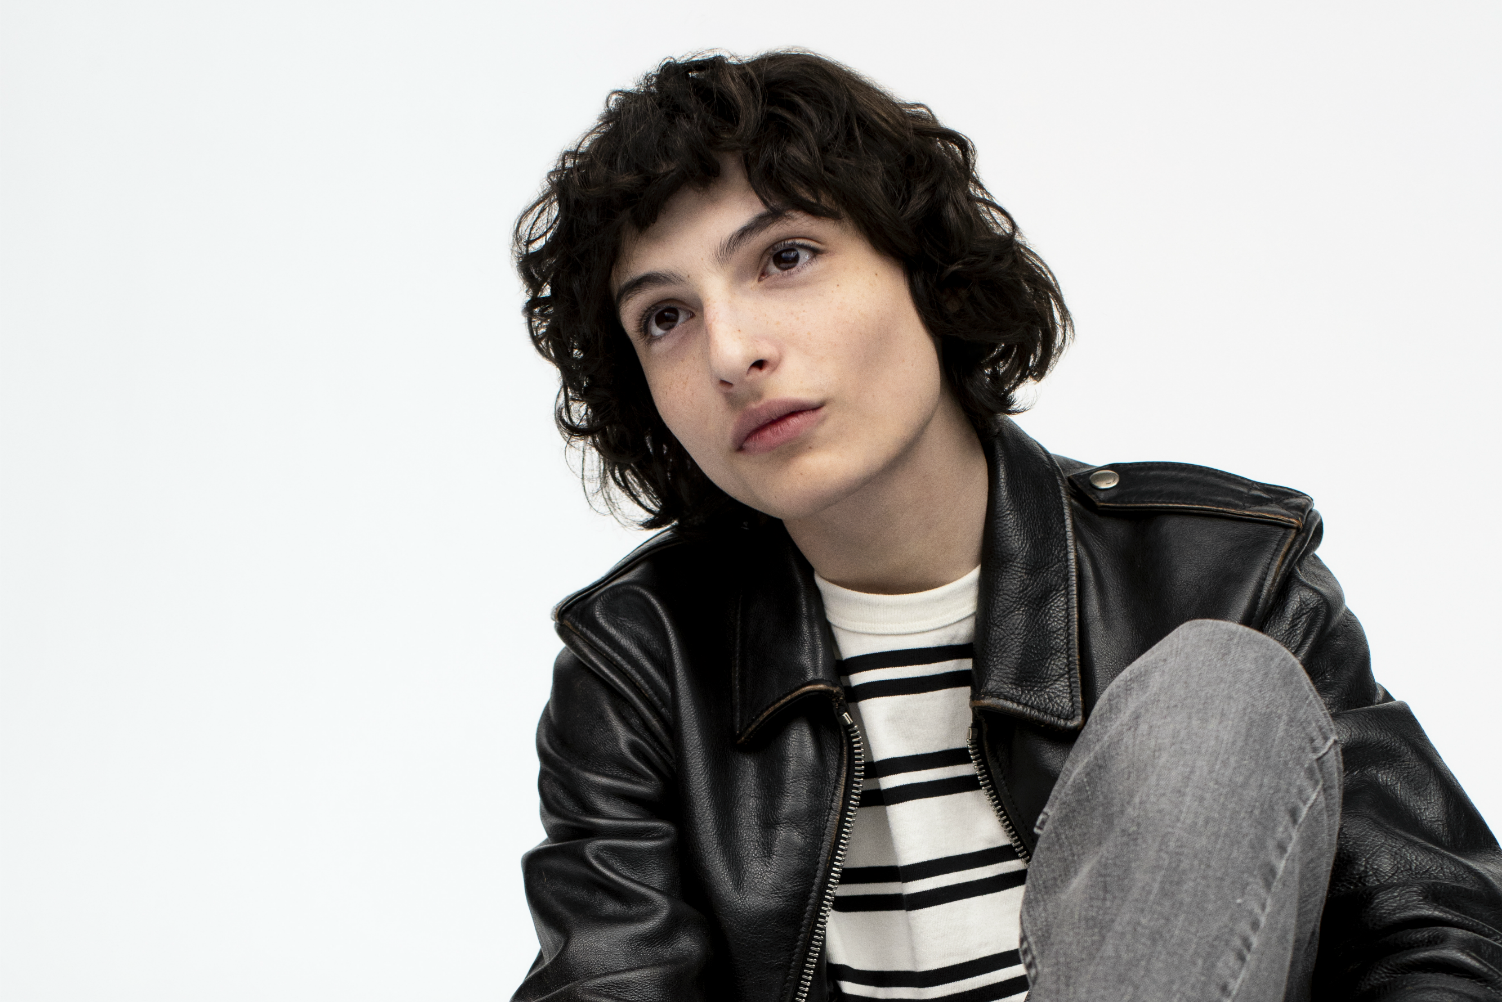 Finn Wolfhard of 'Stranger Things' Tells Us What Actually Scares Him